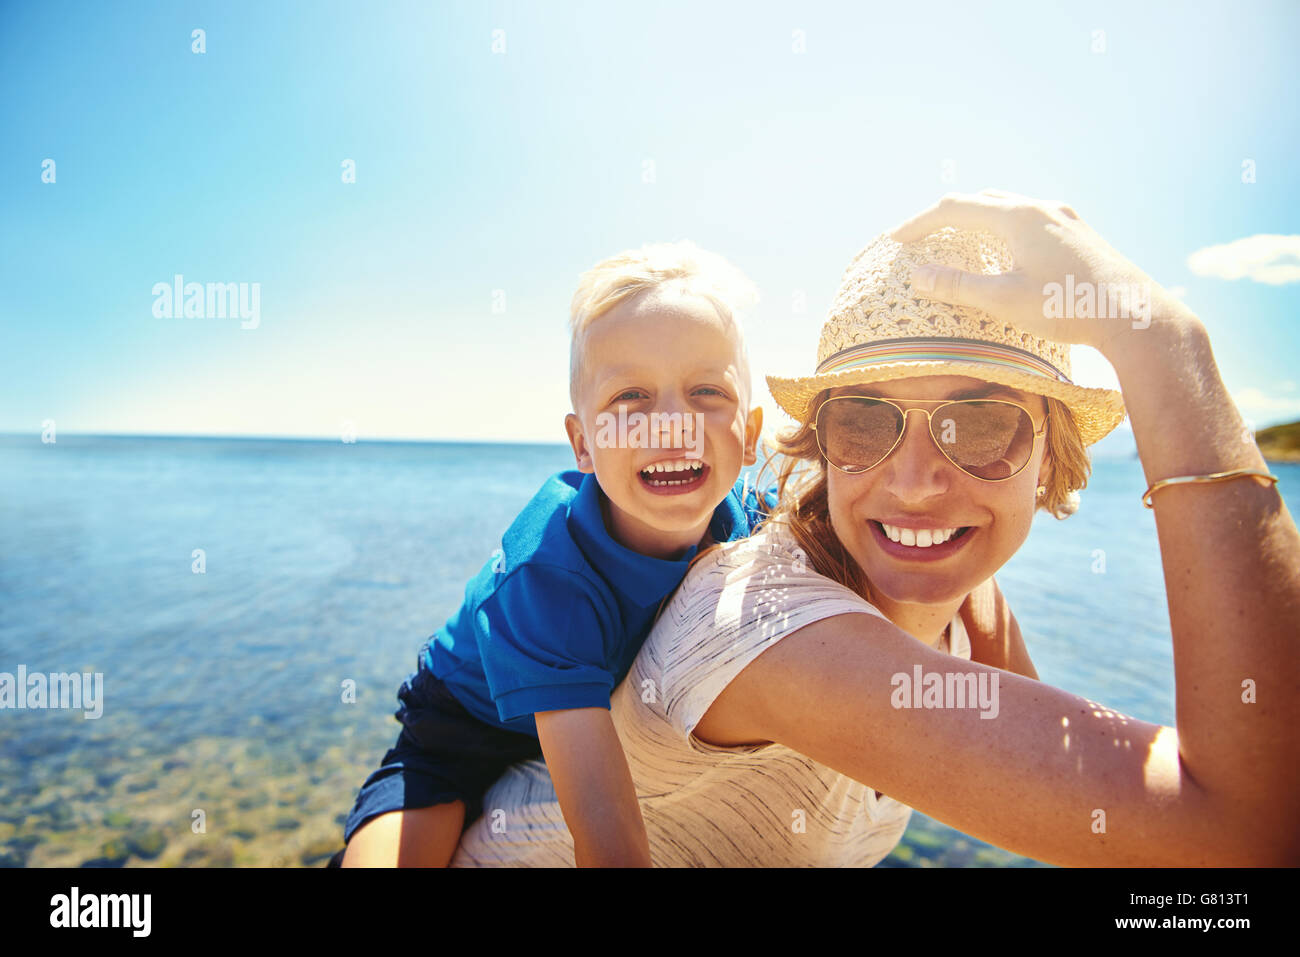 Happy young mother and son on a tropical beach with the laughing little boy getting a piggy back ride on her back Stock Photo